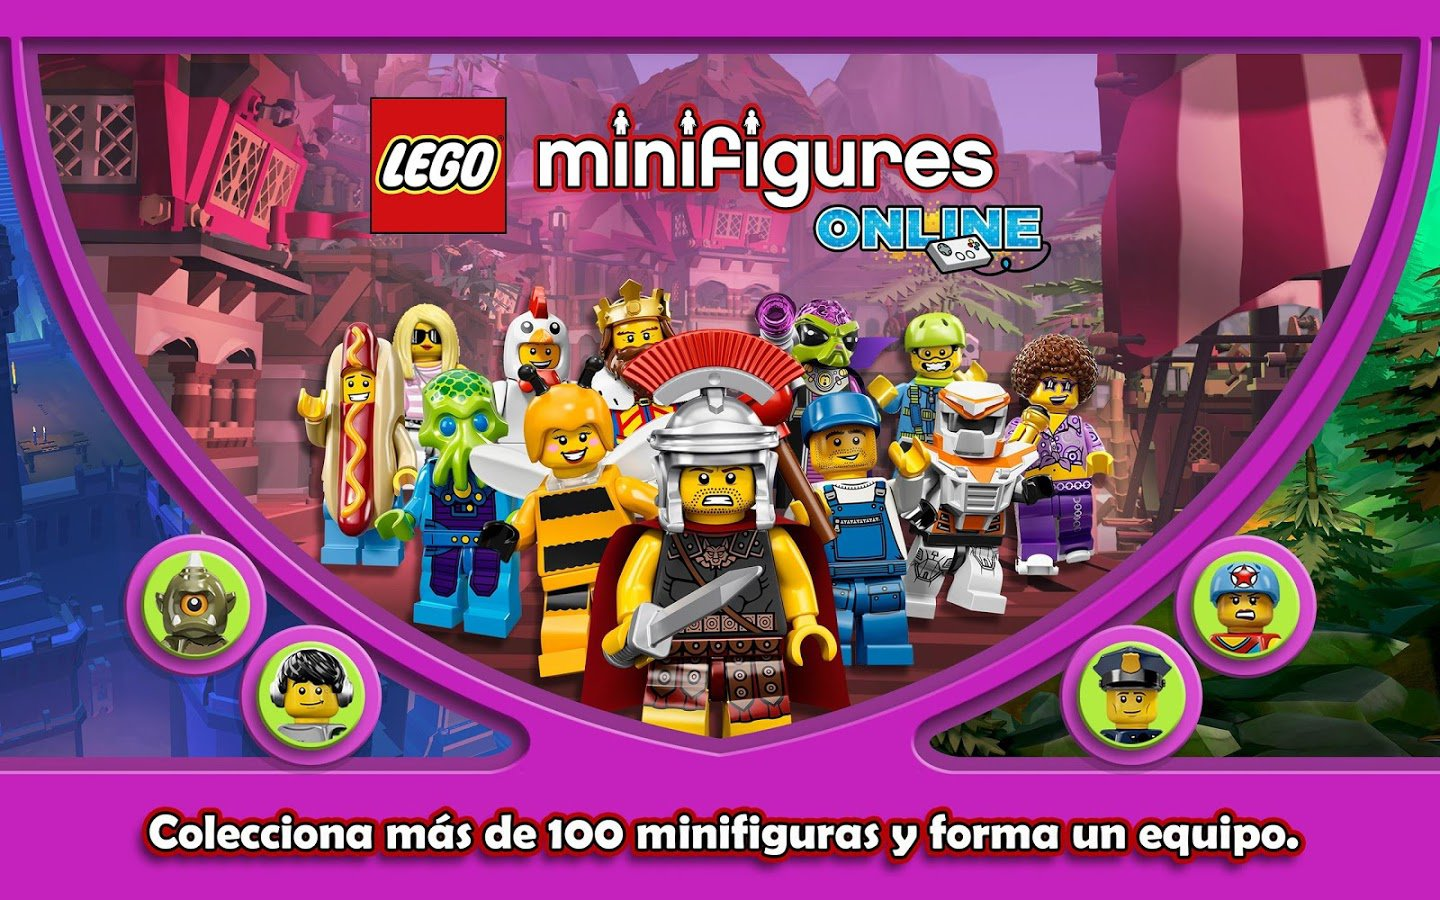 How to sign up for lego minifigures online and download link.